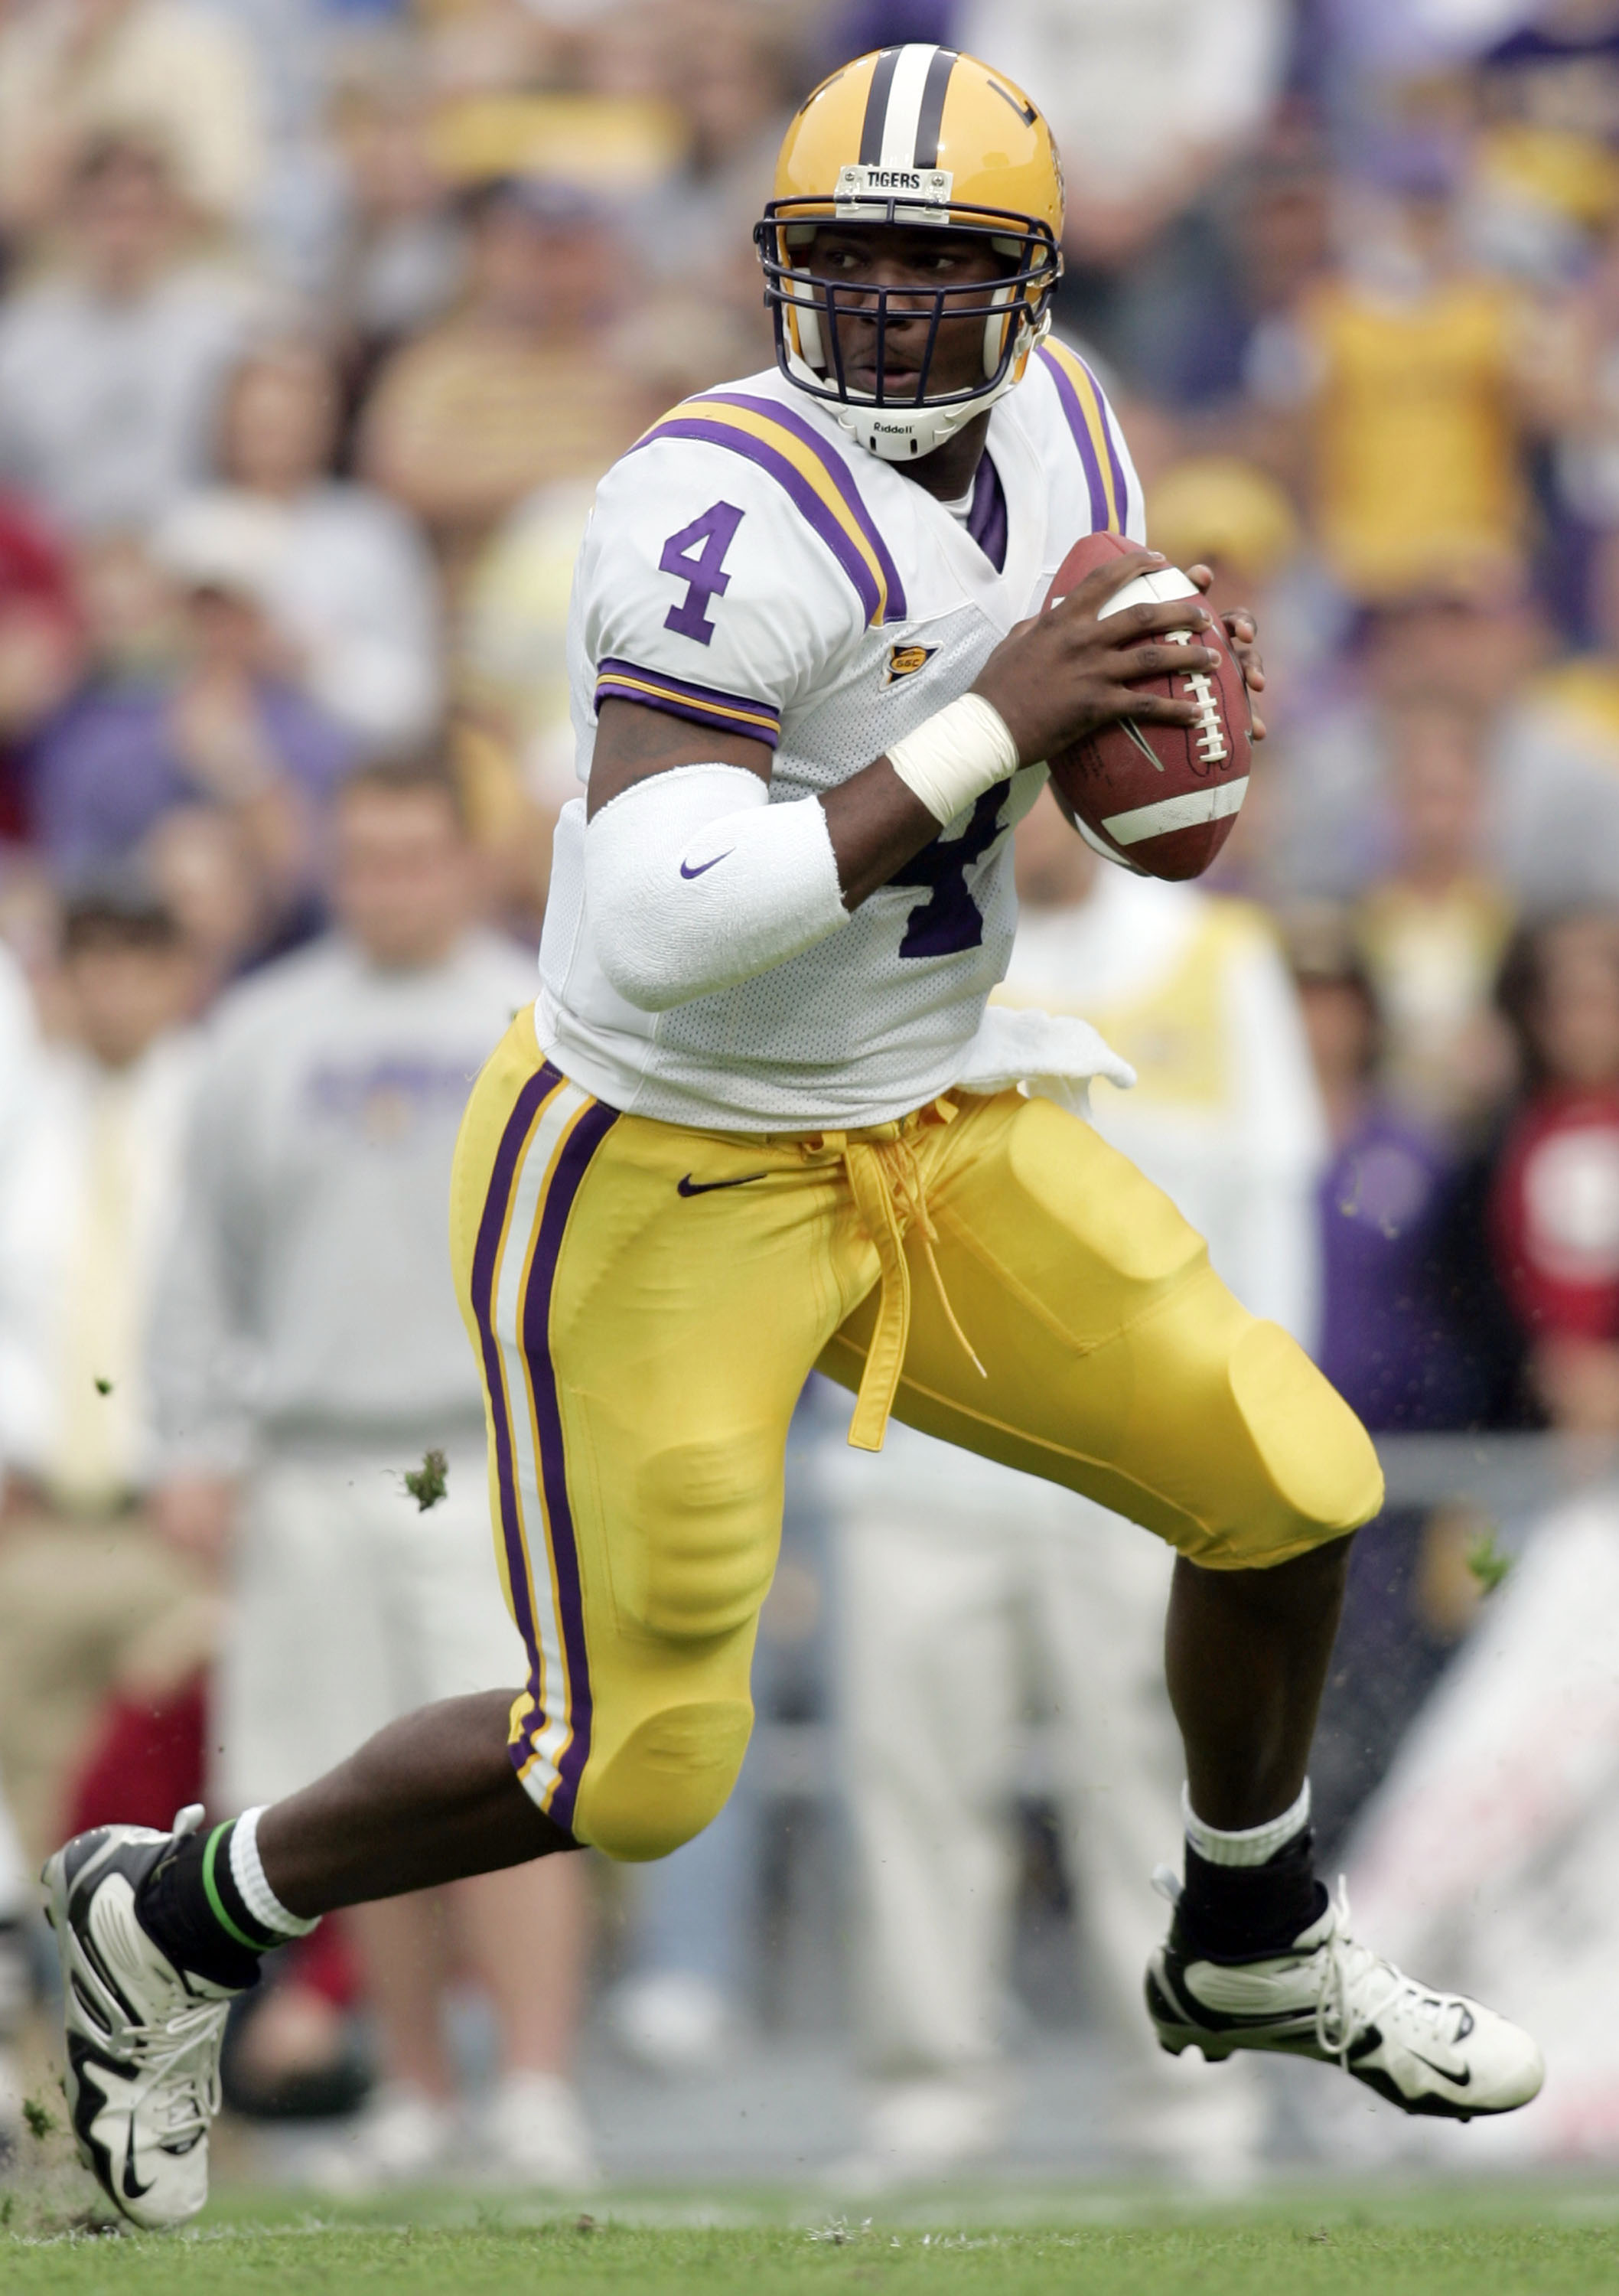 BATON ROUGE, LA - NOVEMBER 25:  Quarterback JaMarcus Russell #4 of the LSU Tigers scrambles against the Arkansas Razorbacks on November 25, 2005 at Tiger Stadium in Baton Rouge, Louisiana. LSU defeated Arkansas 19-17.  (Photo by Chris Graythen/Getty Image